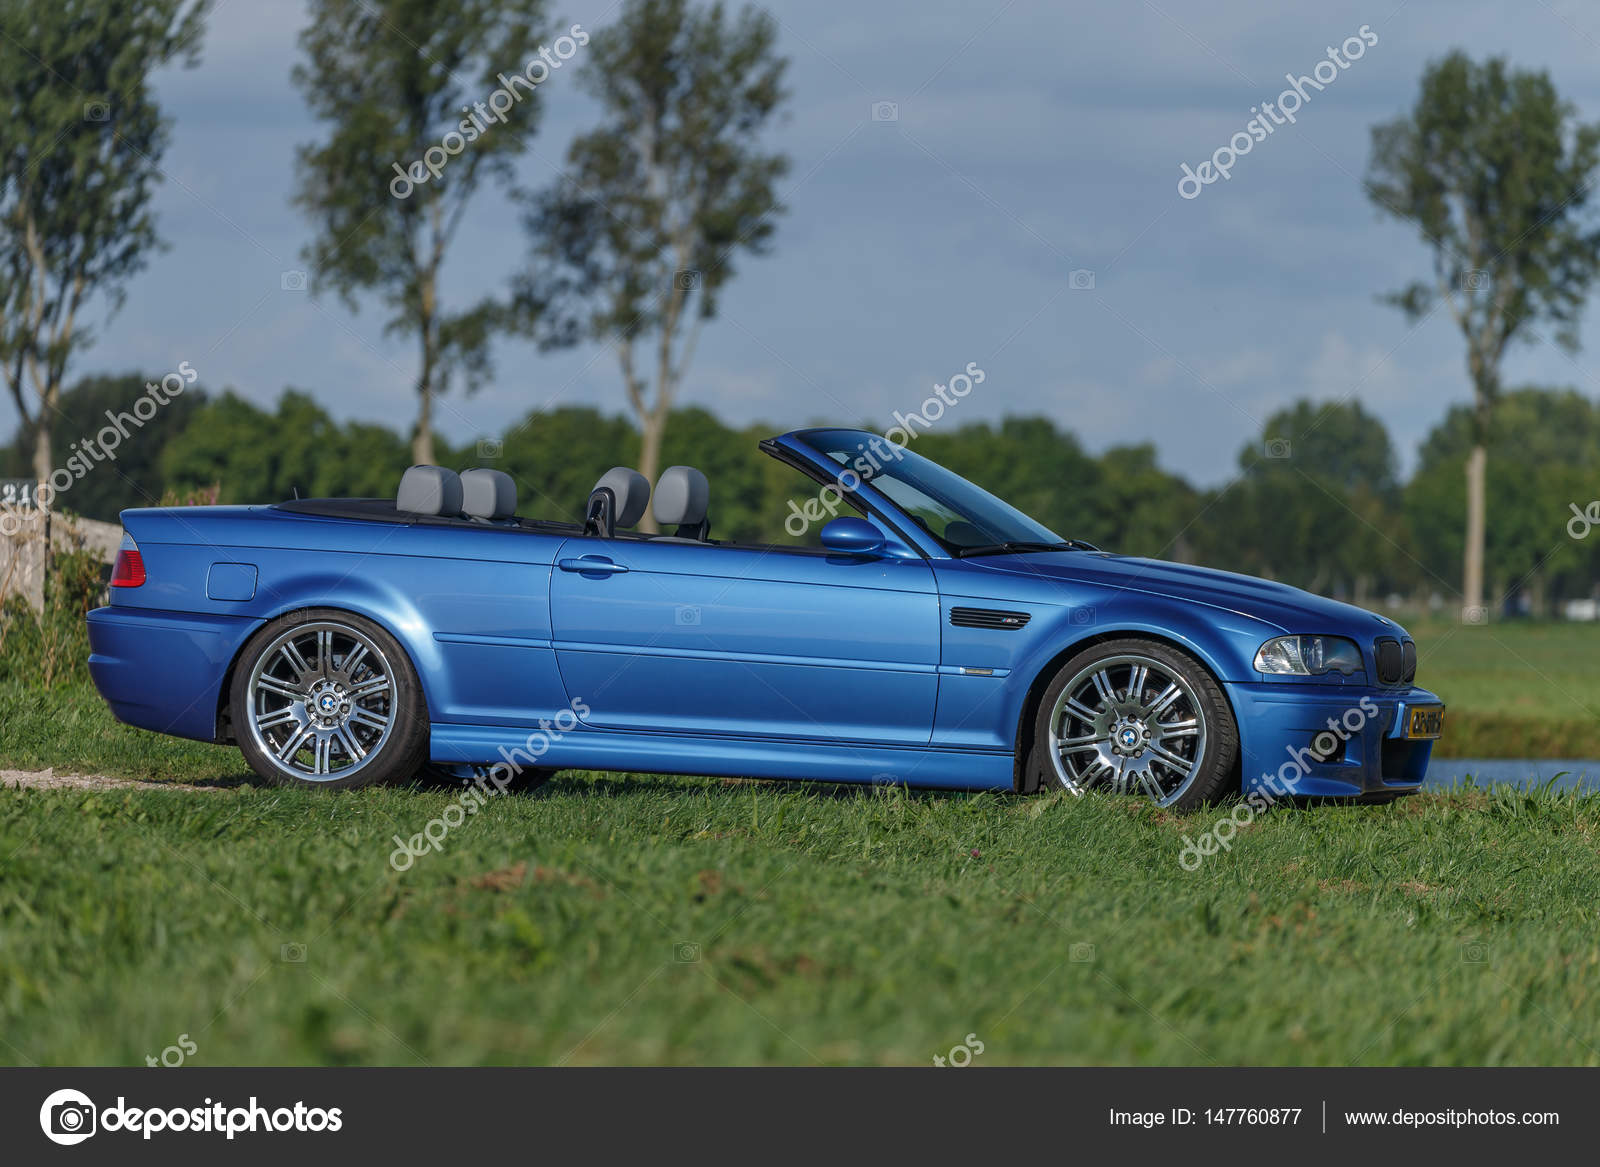 bmw m3 e46 convertible standing in a polder stock. Black Bedroom Furniture Sets. Home Design Ideas